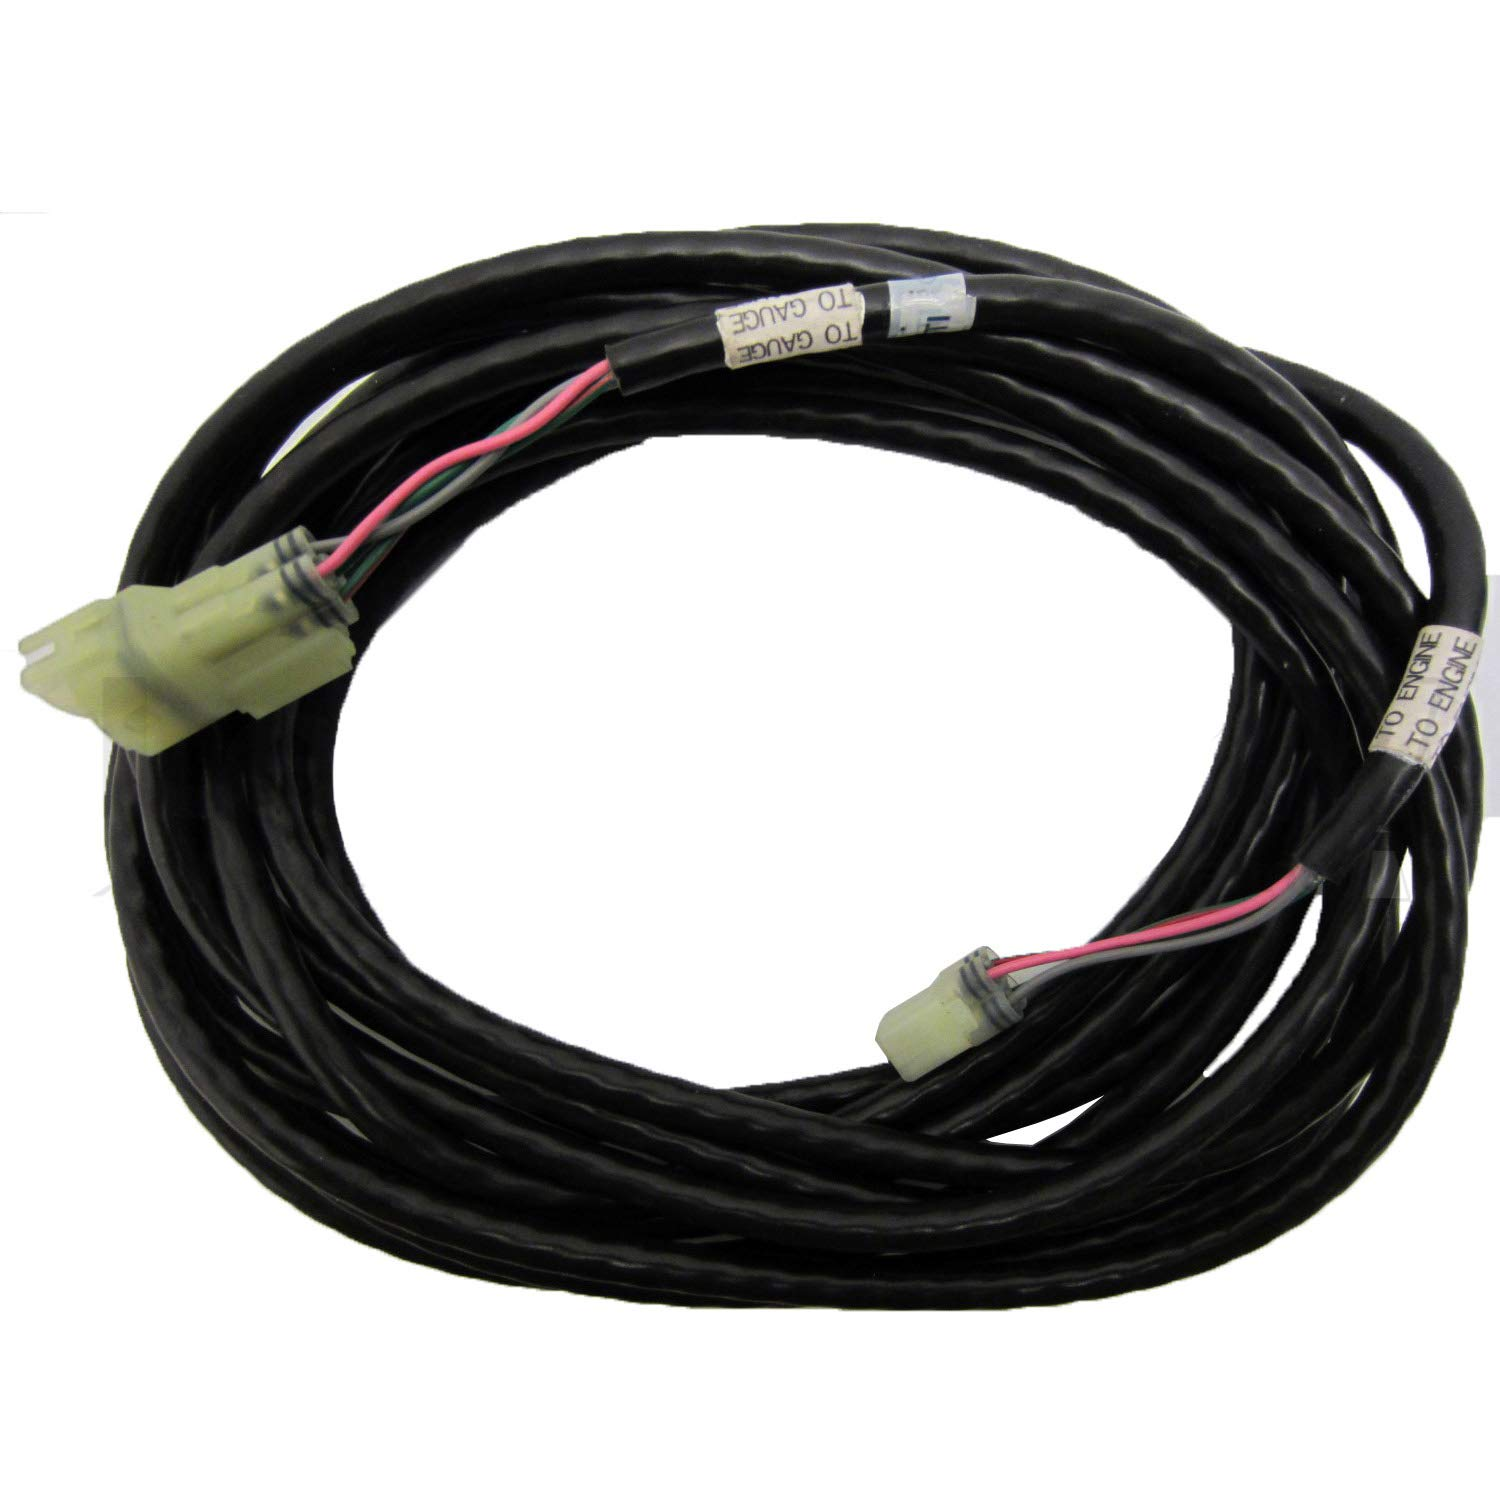 Yamaha OEM 20' Trim & Tilt / Oil Level Sender Wire Harness Cable 20ft 6Y5-83653-10-00; 6Y5836531000 by YAMAHA